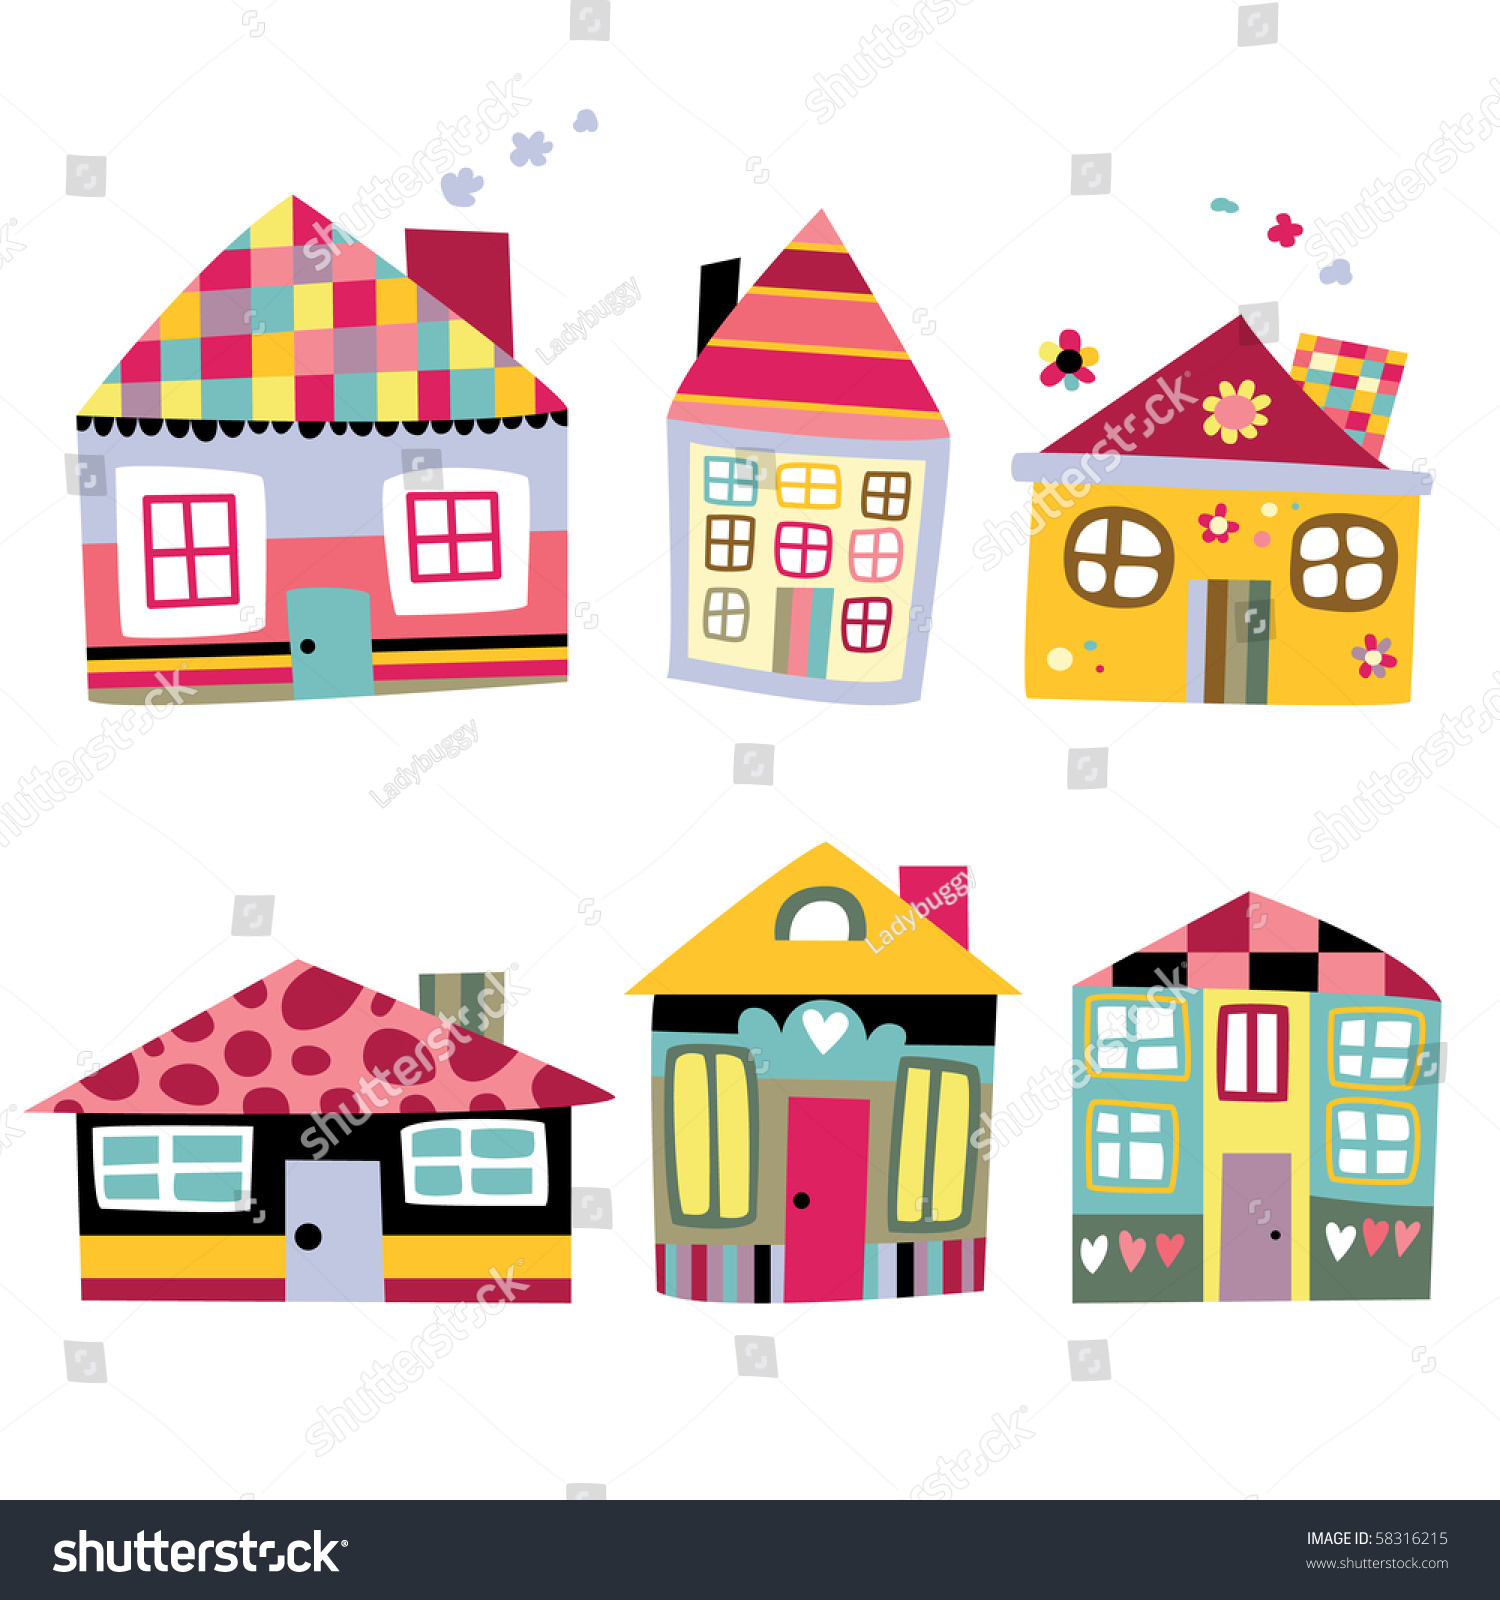 Collection cute houses whimsical childlike style stock for Cute house images